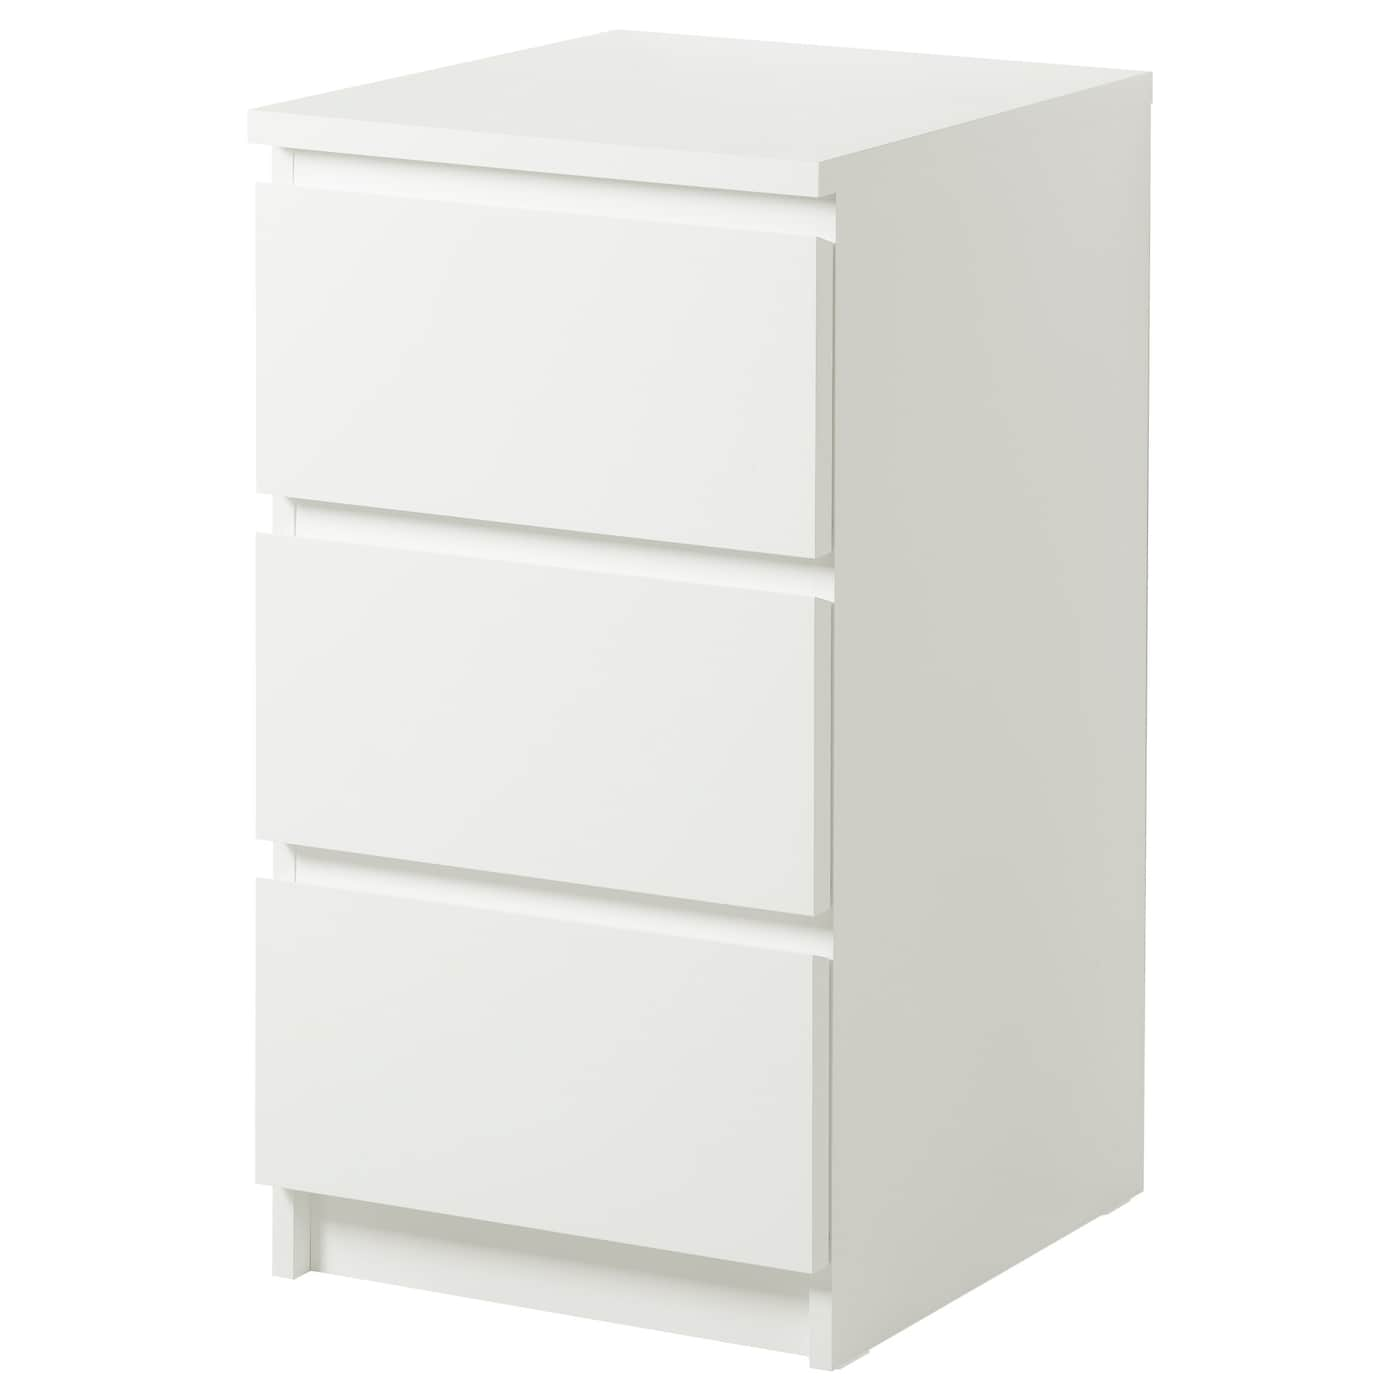 ikea dombas chest of drawers. Black Bedroom Furniture Sets. Home Design Ideas